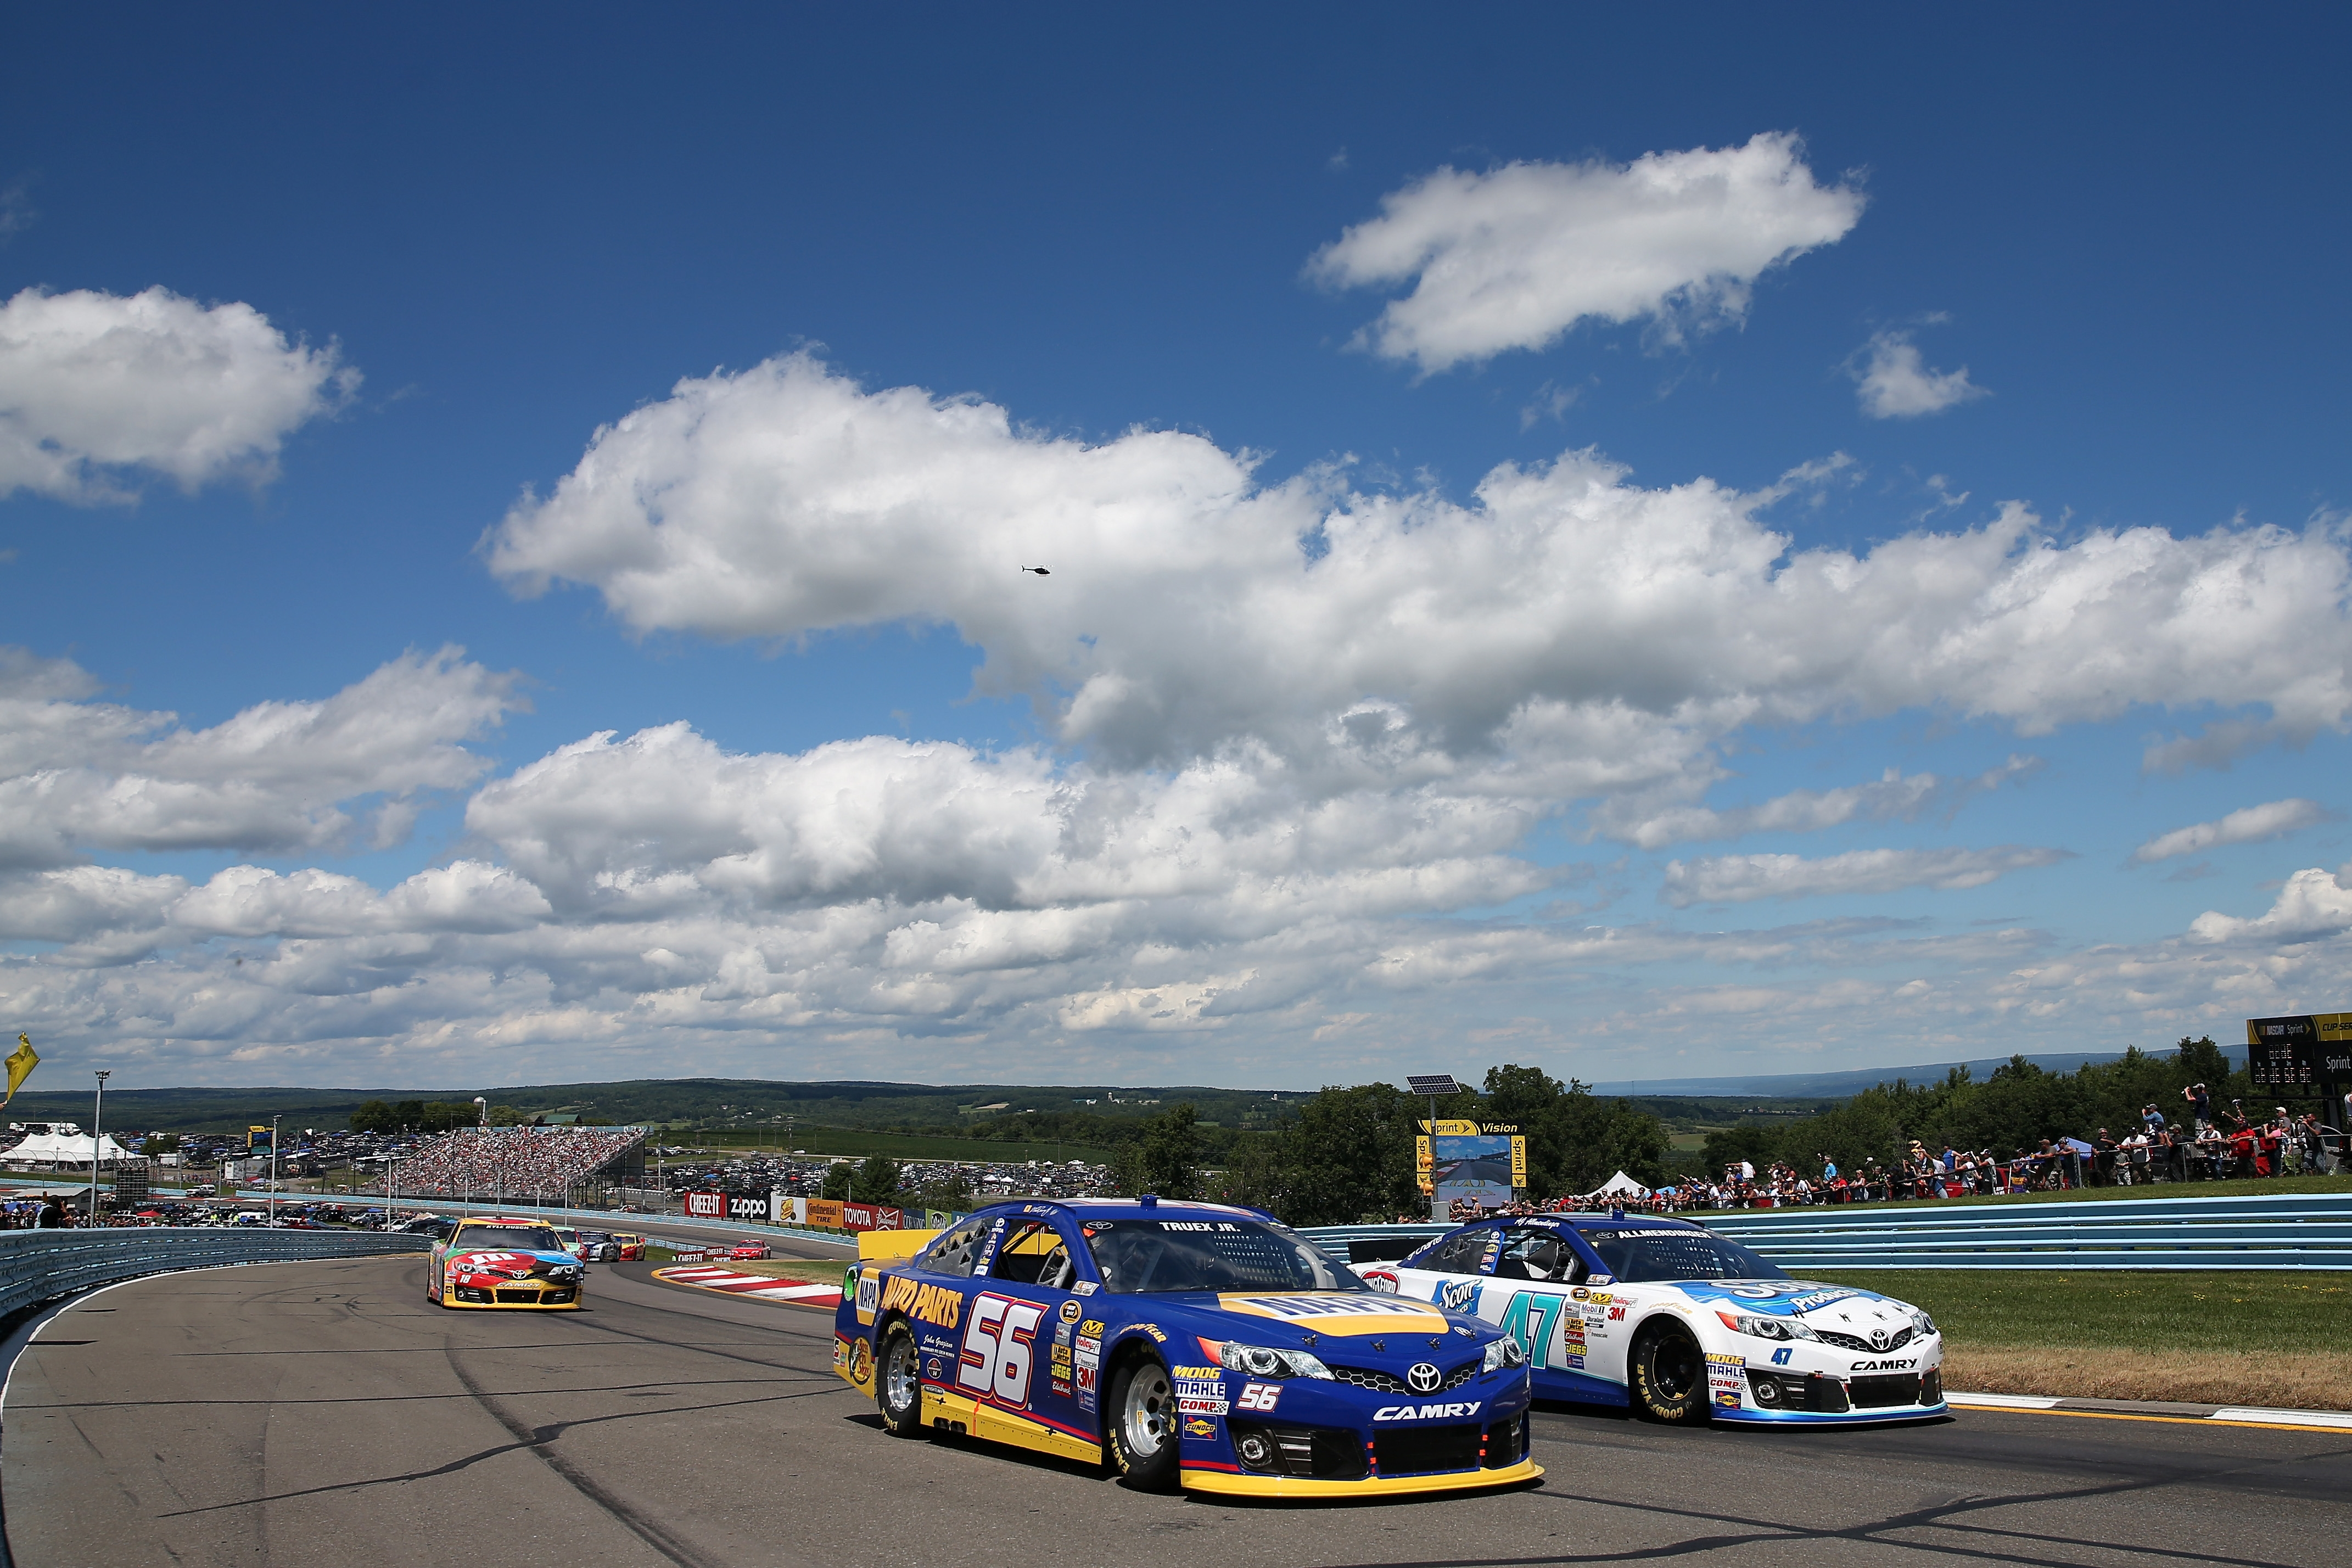 Martin Truex Jr. keeps his No. 56 car ahead of AJ Allmendinger's ride during Sunday's race at Watkins Glen.